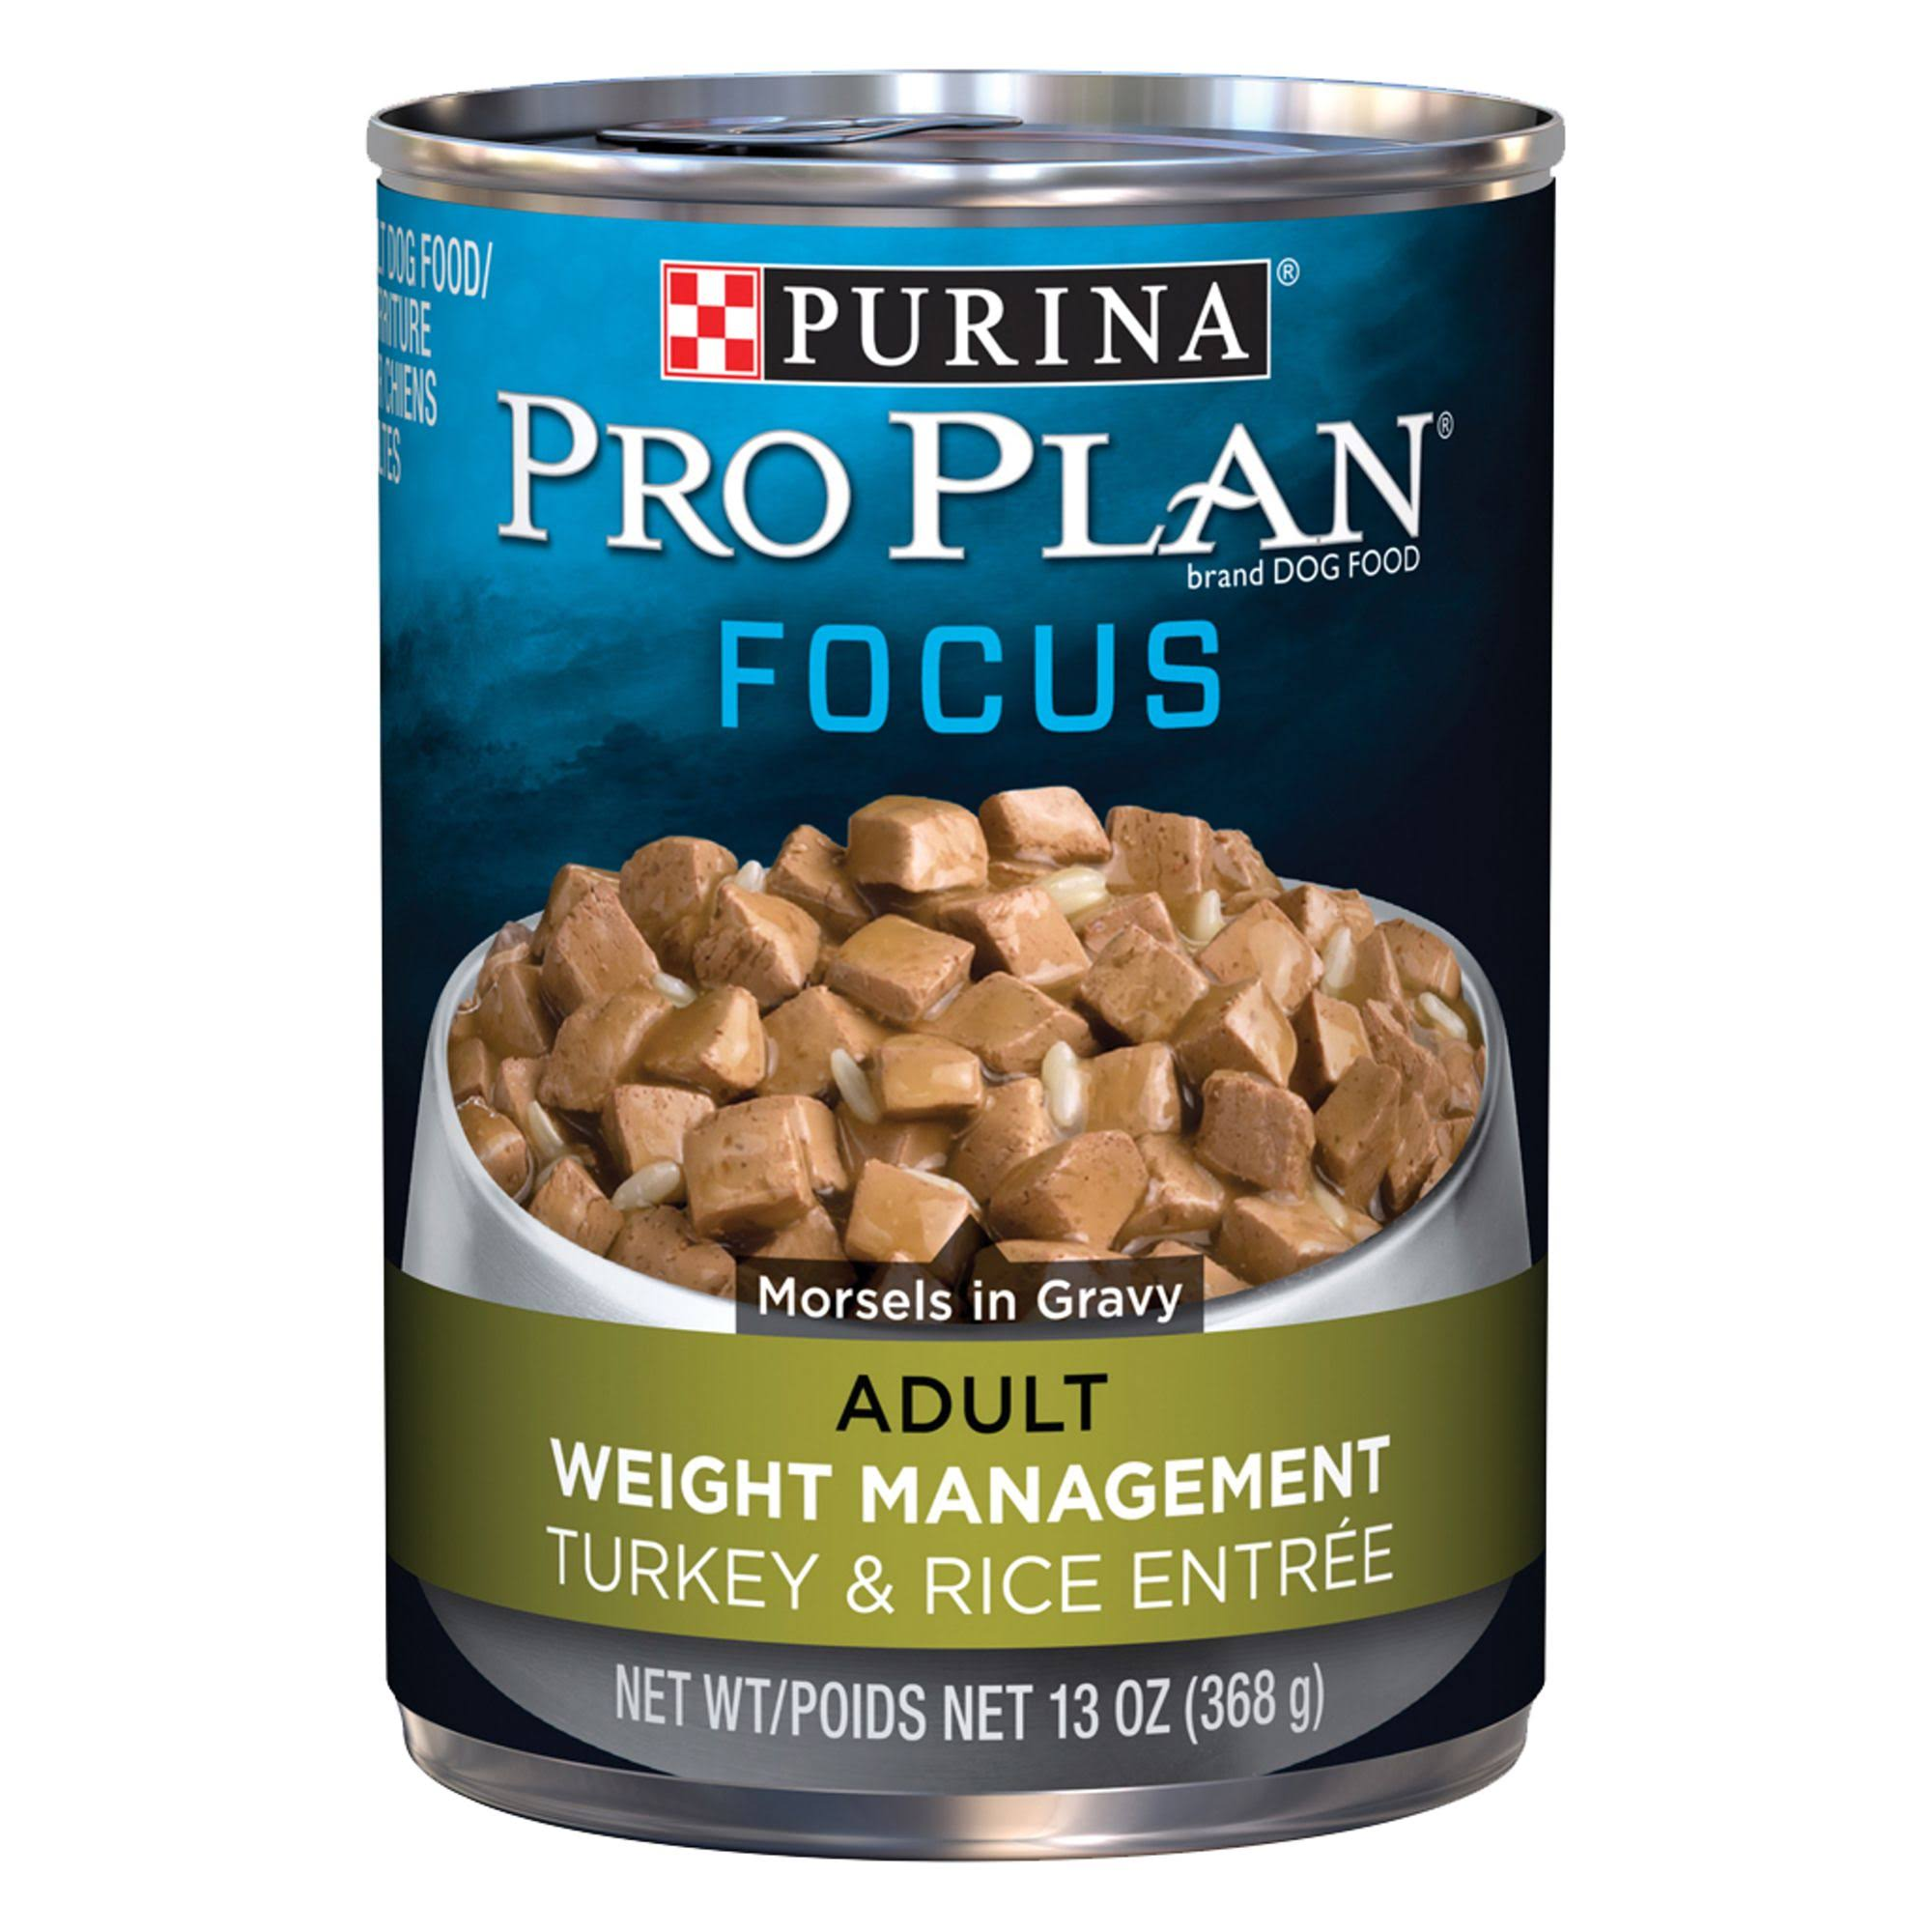 Pro Plan Focus Weight Management Turkey & Rice Canned Dog Food, 13 oz